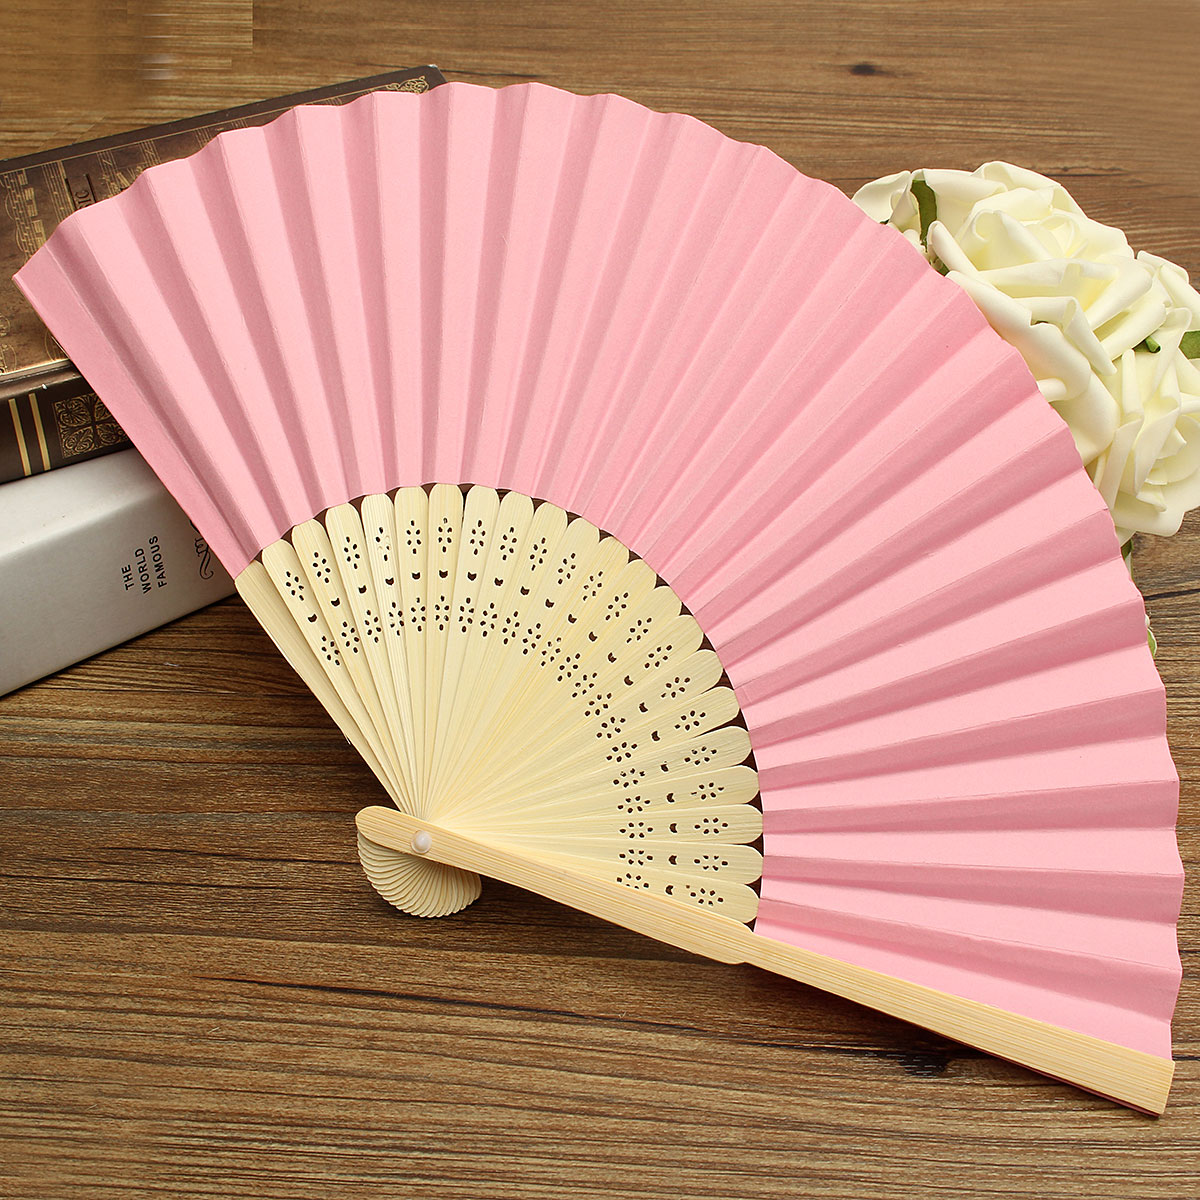 Colorful Chinese Folding Bamboo Fan Retro Hand Paper Fans Wedding Gift Favors Pink